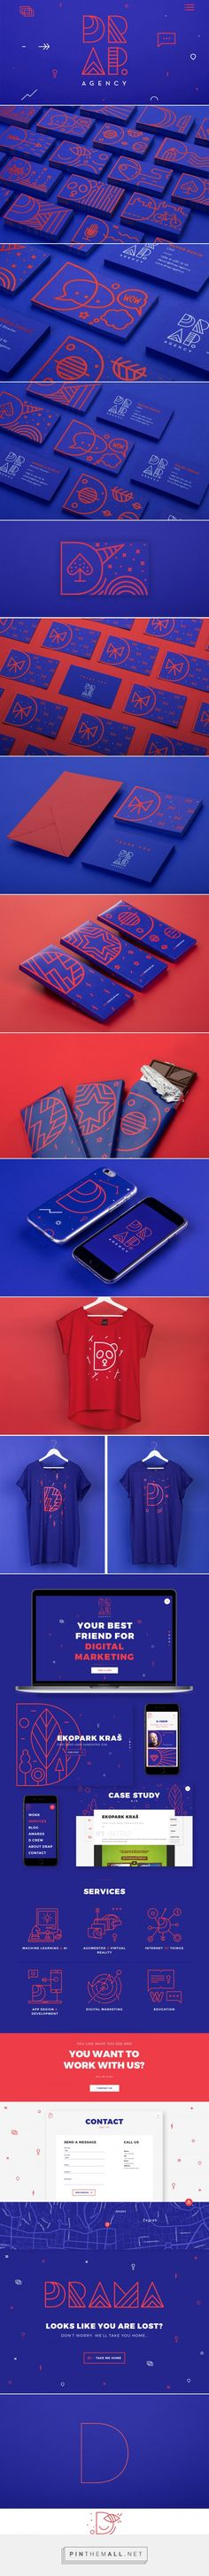 DRAP.agency Branding on Behance - created via https://pinthemall.net